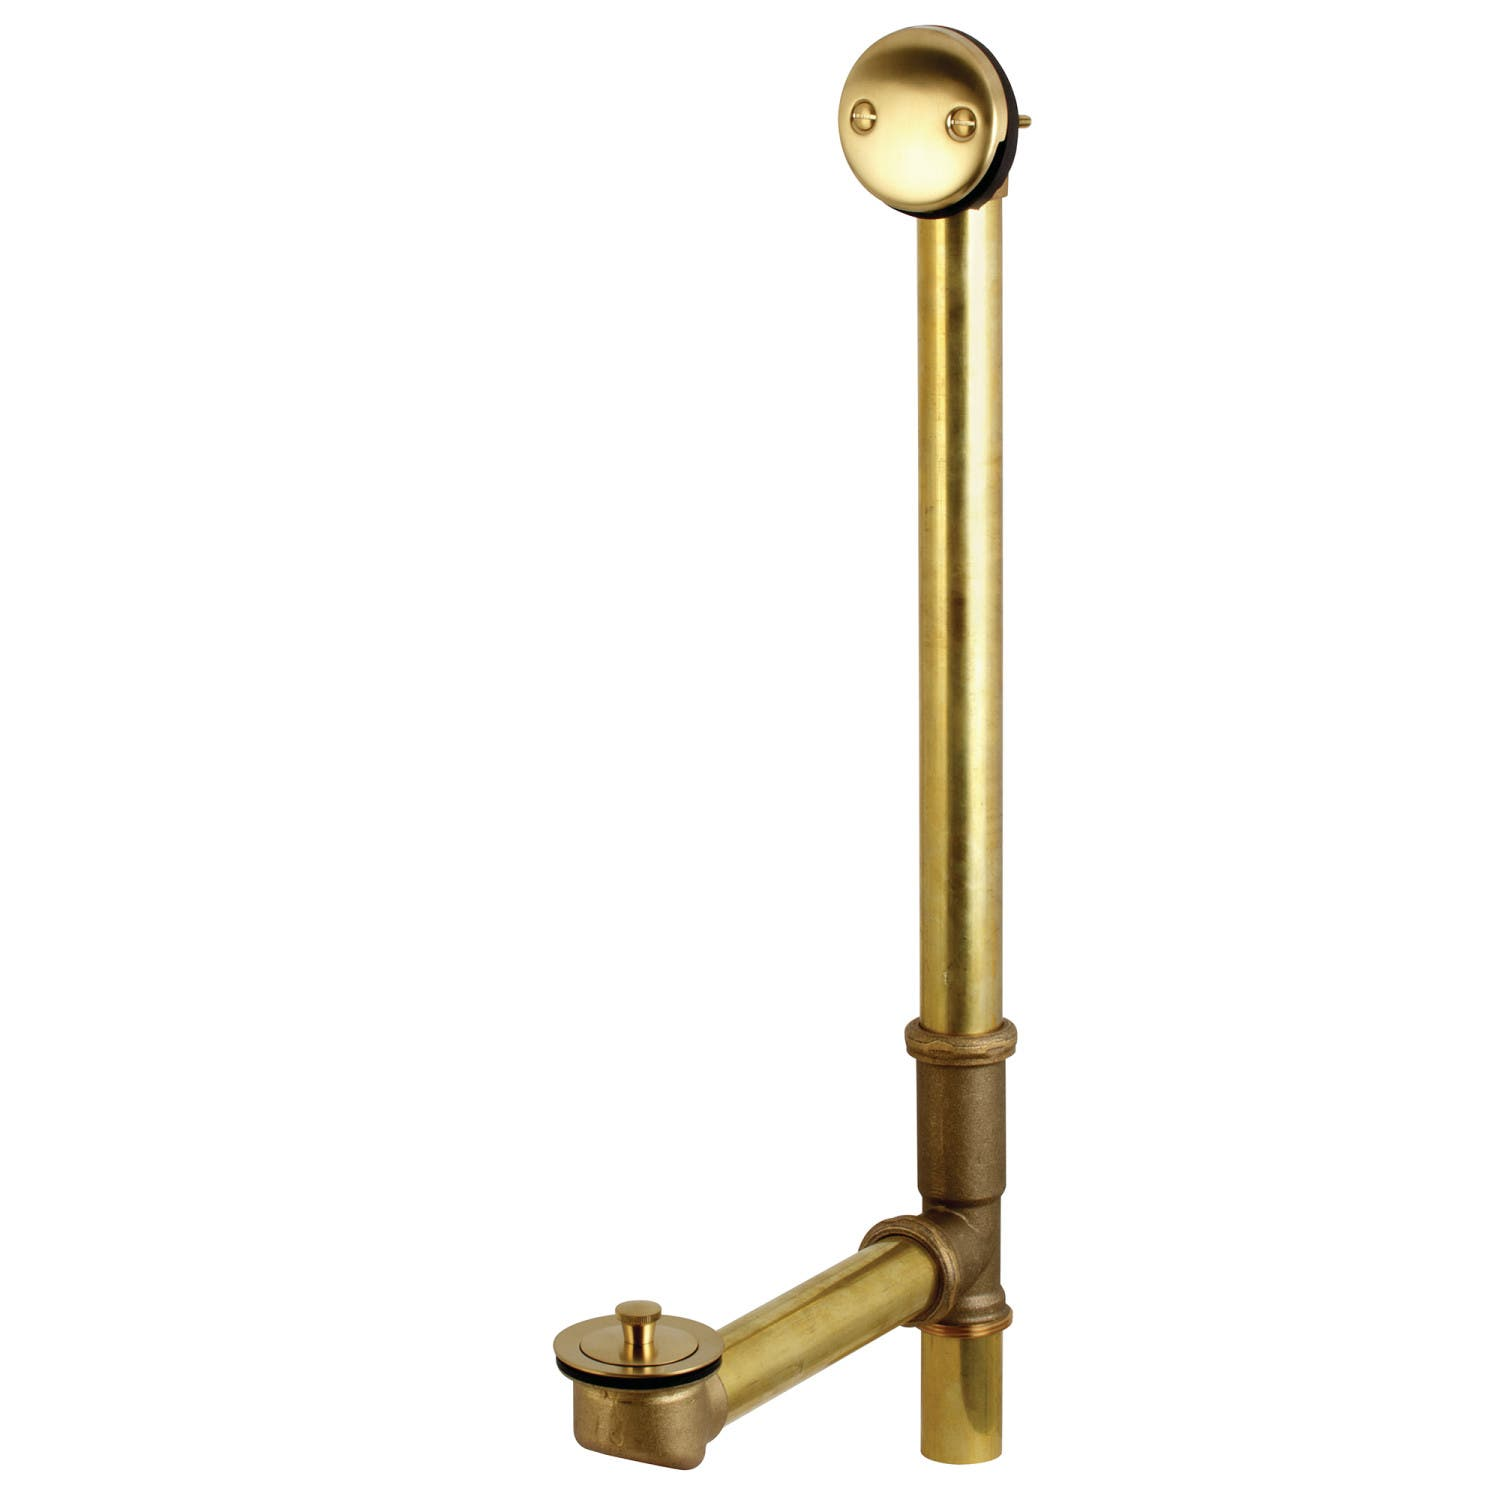 """Kingston Brass DLL3187 18"""" Tub Waste and Overflow with Lift & Lock Drain, 20 Gauge, Brushed Brass"""